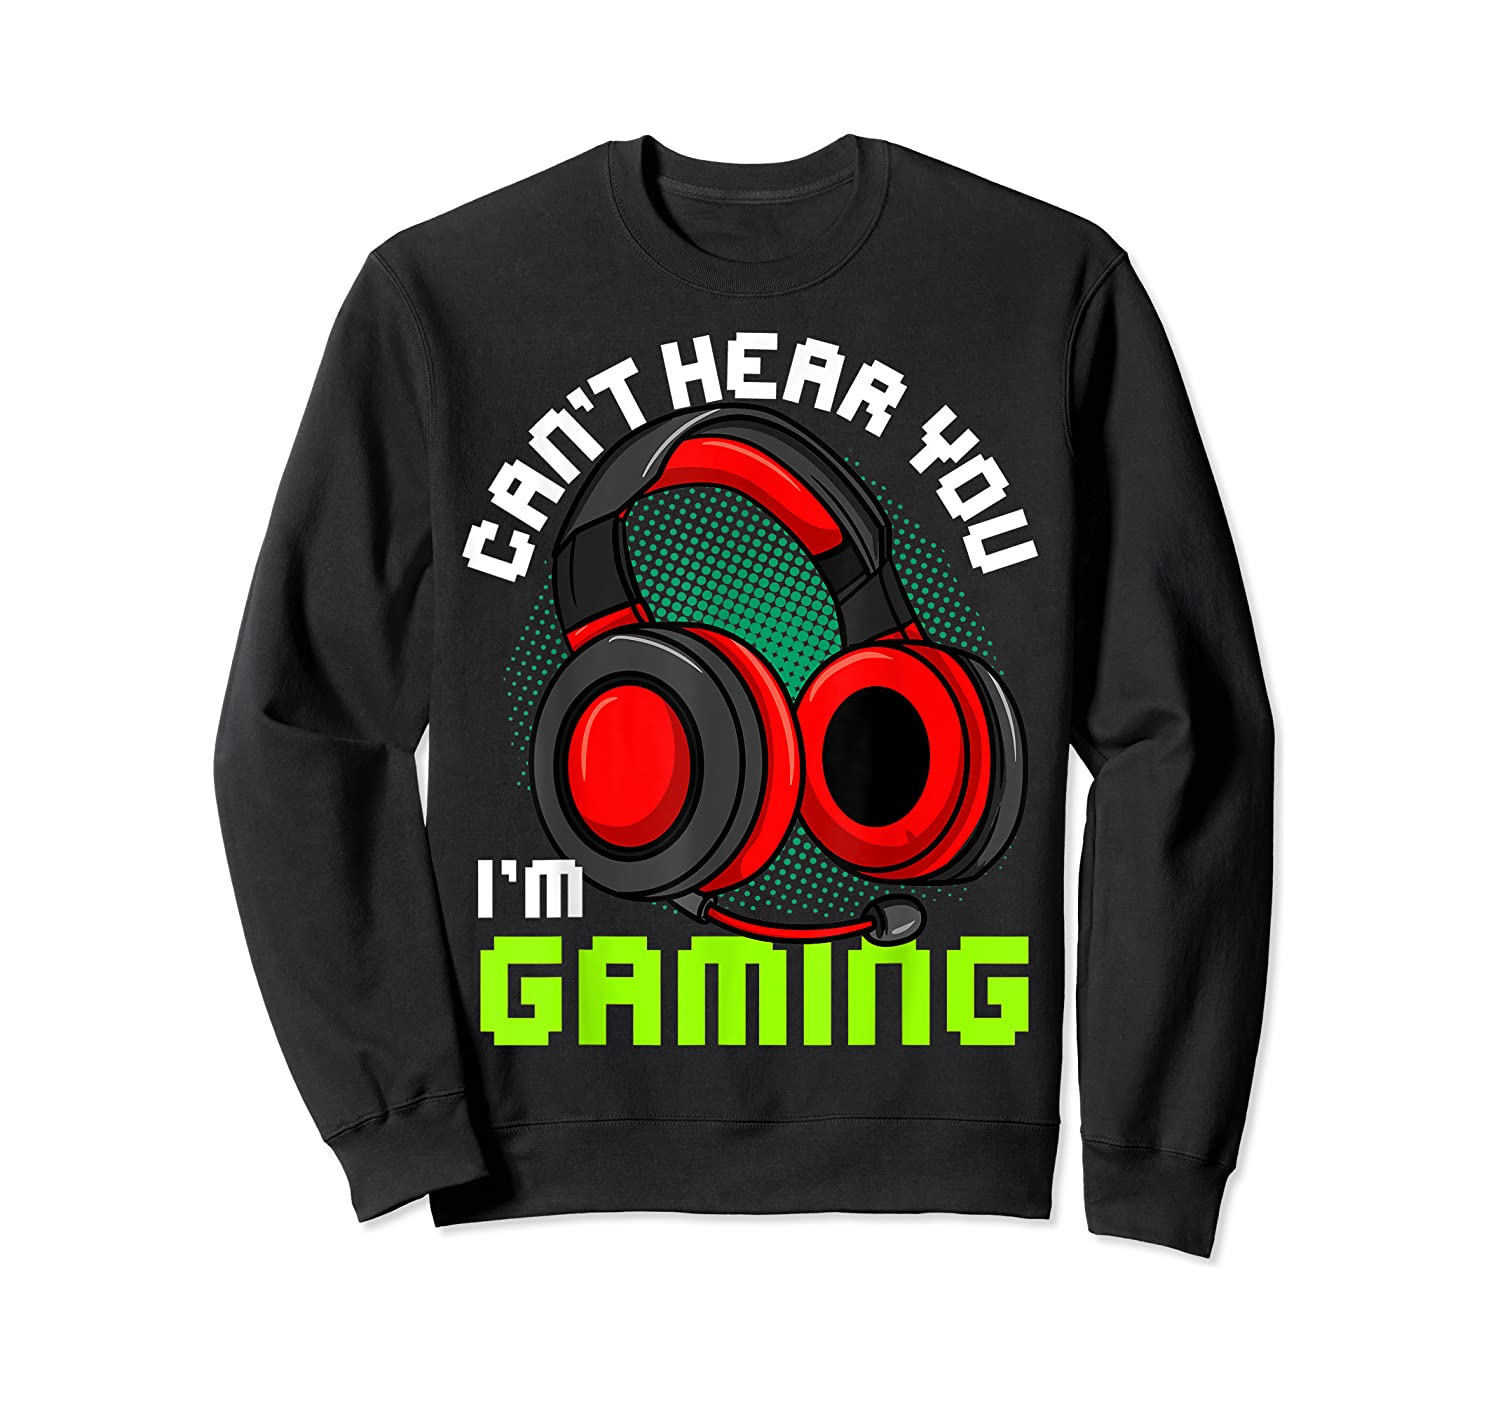 Can't Hear You I'm Gaming Gamer Gamers Funny Saying T-shirt Crewneck Sweater